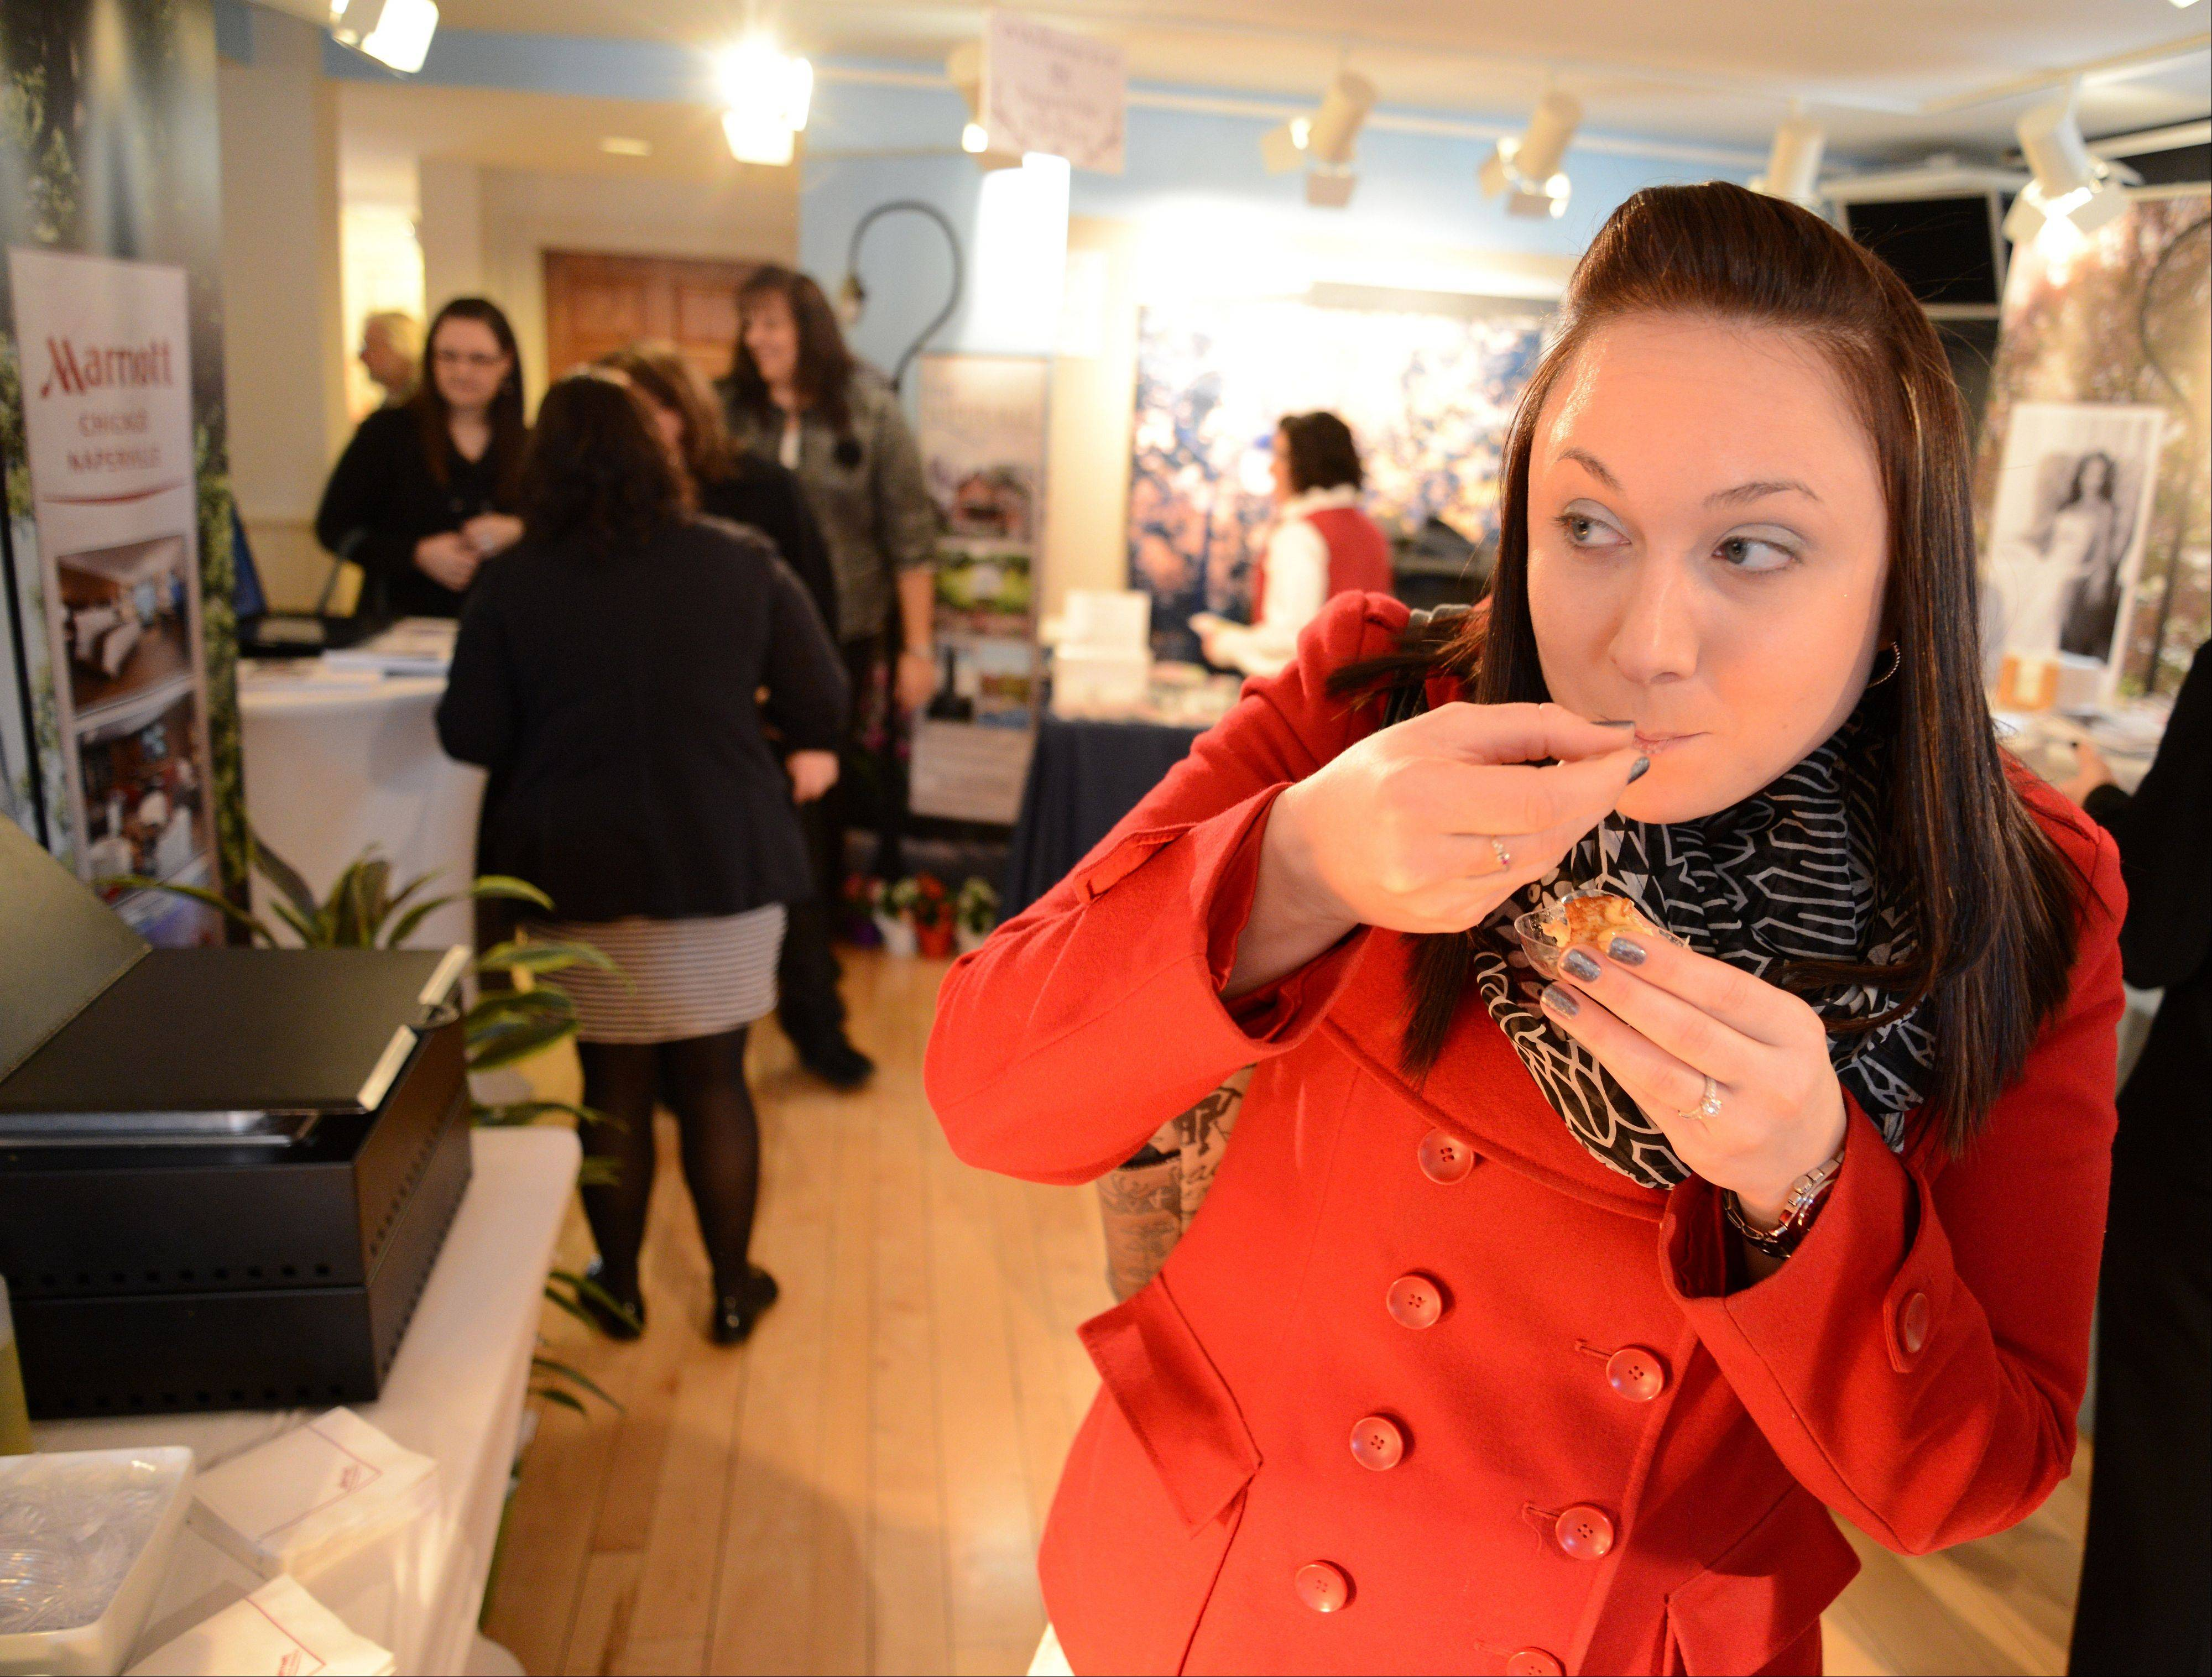 Kristen Price of Naperville samples some crabcake made by the Marriott in Naperville during the Naper Settlement's annual Bridal Showcase. On Saturday, more than 50 vendors had their services on display.